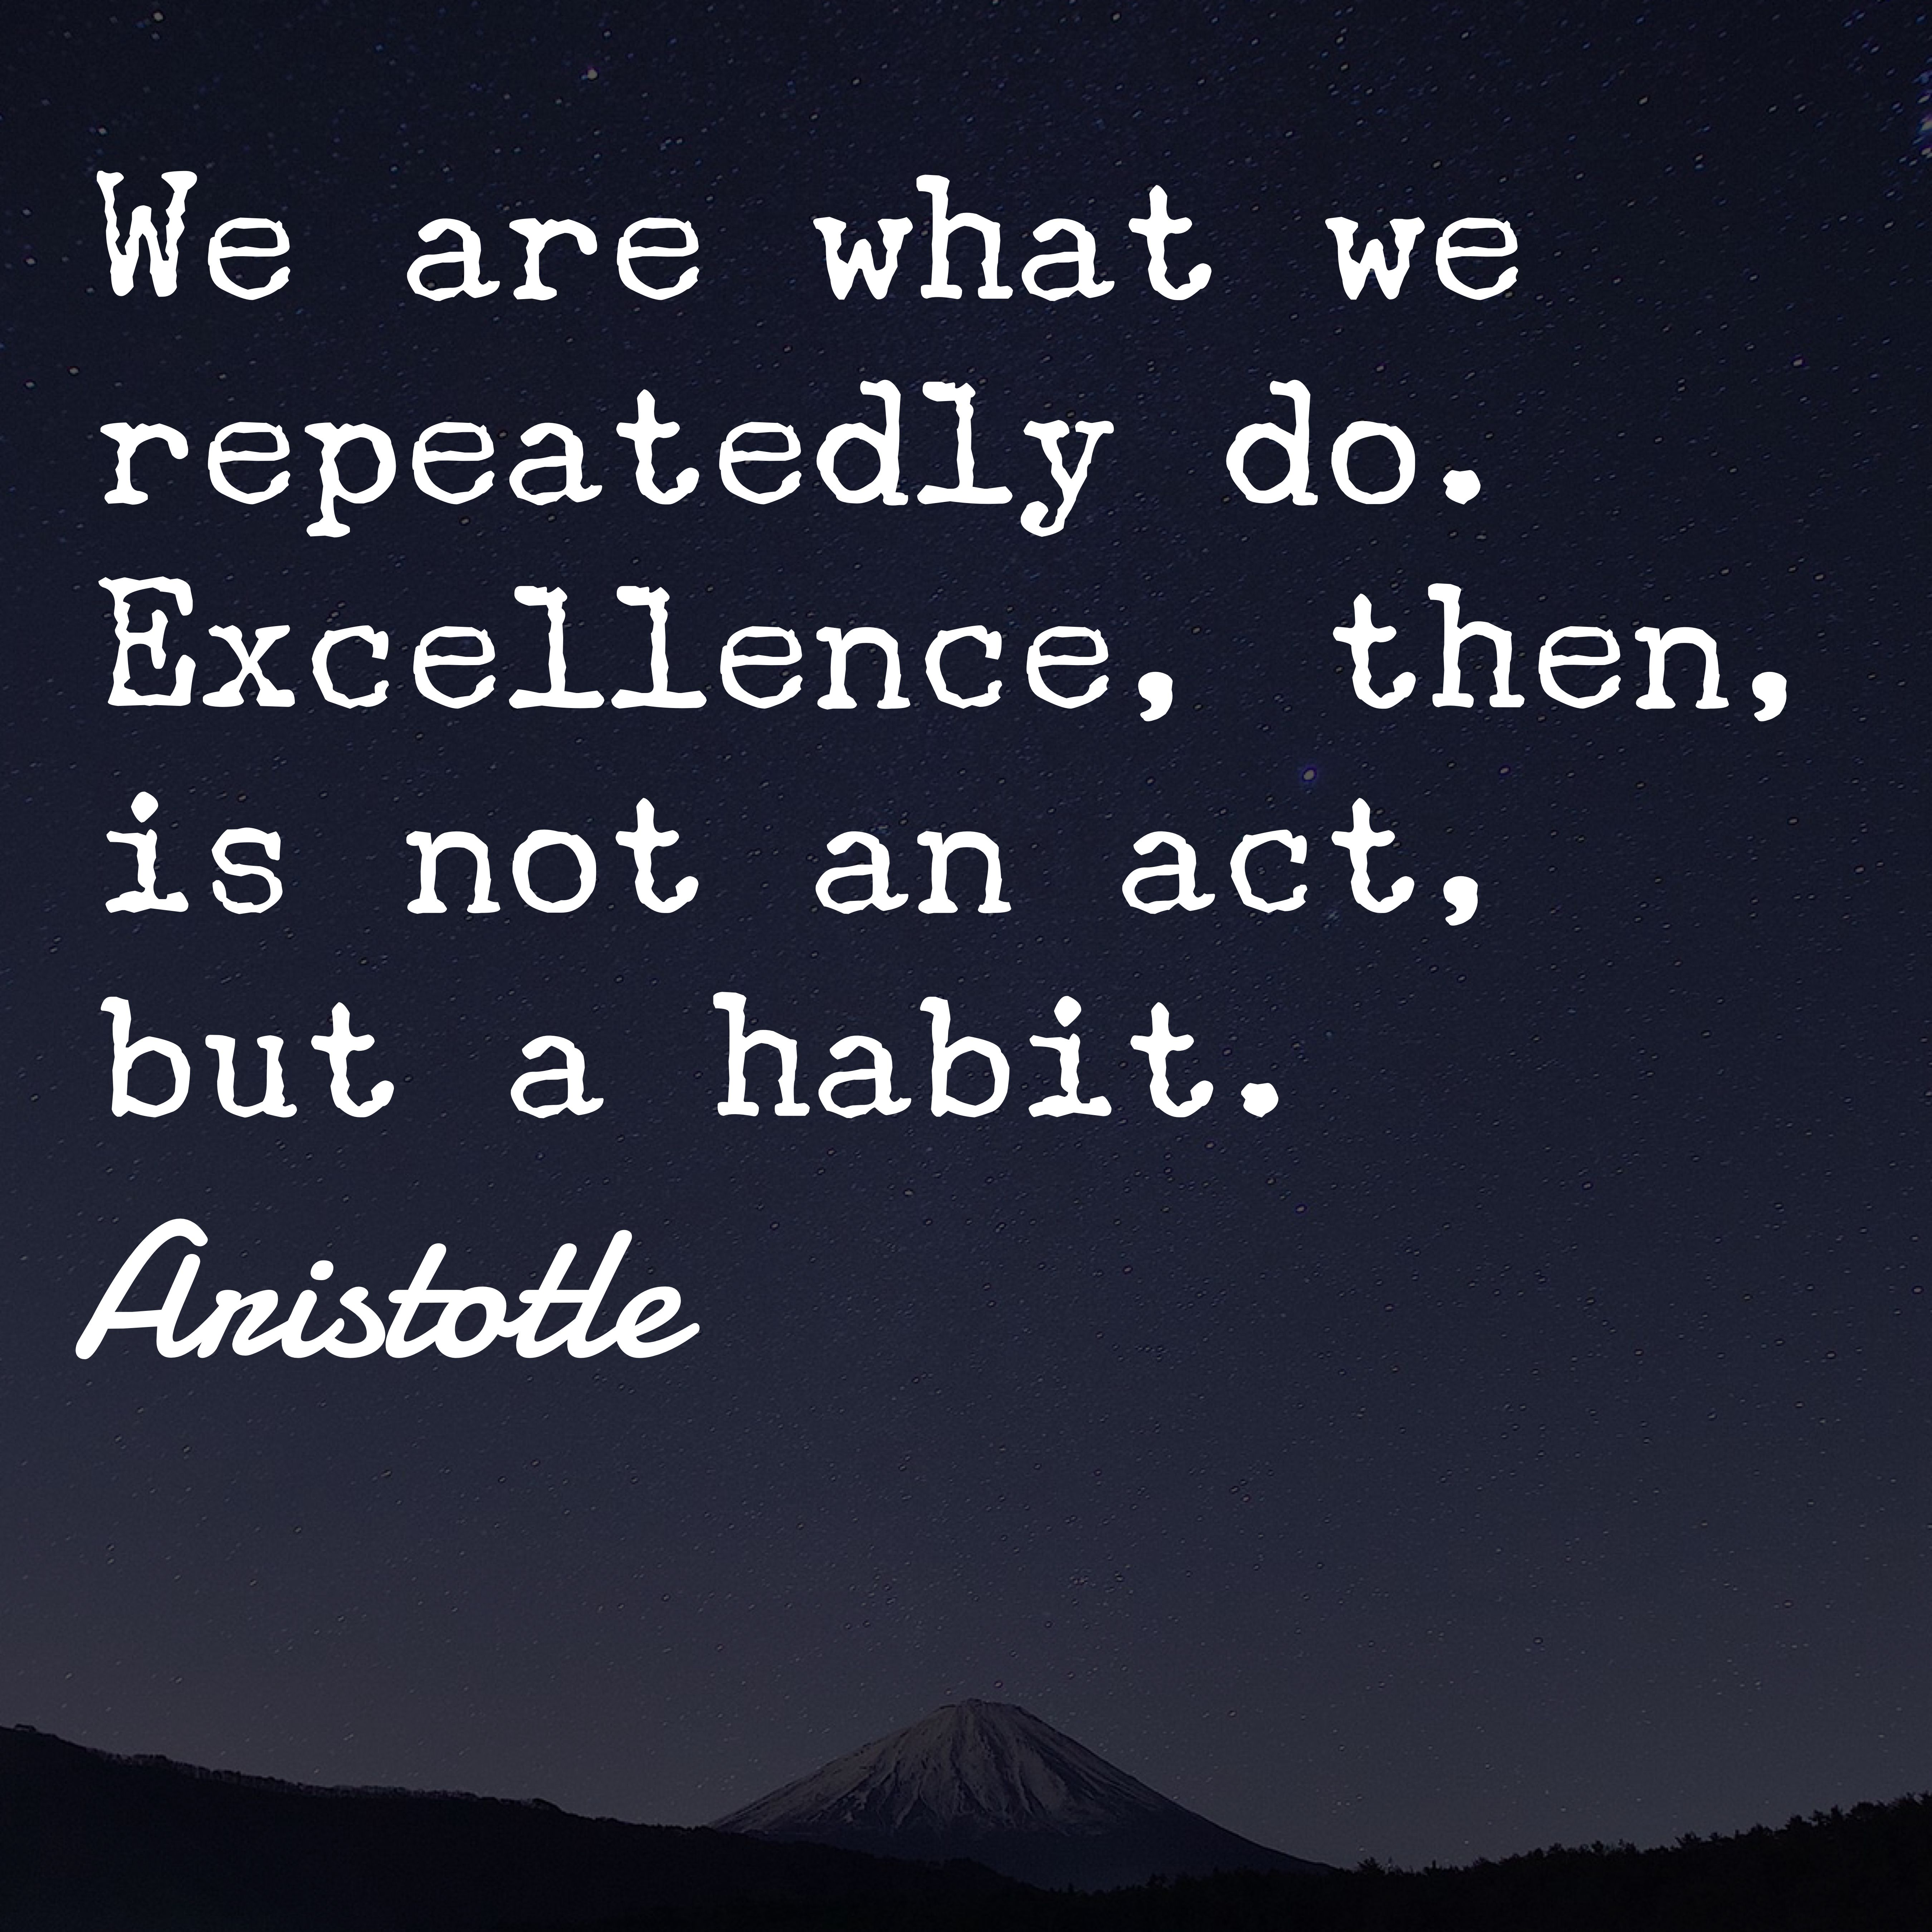 30 Aristotle Quotes on Love, Life and Education Love